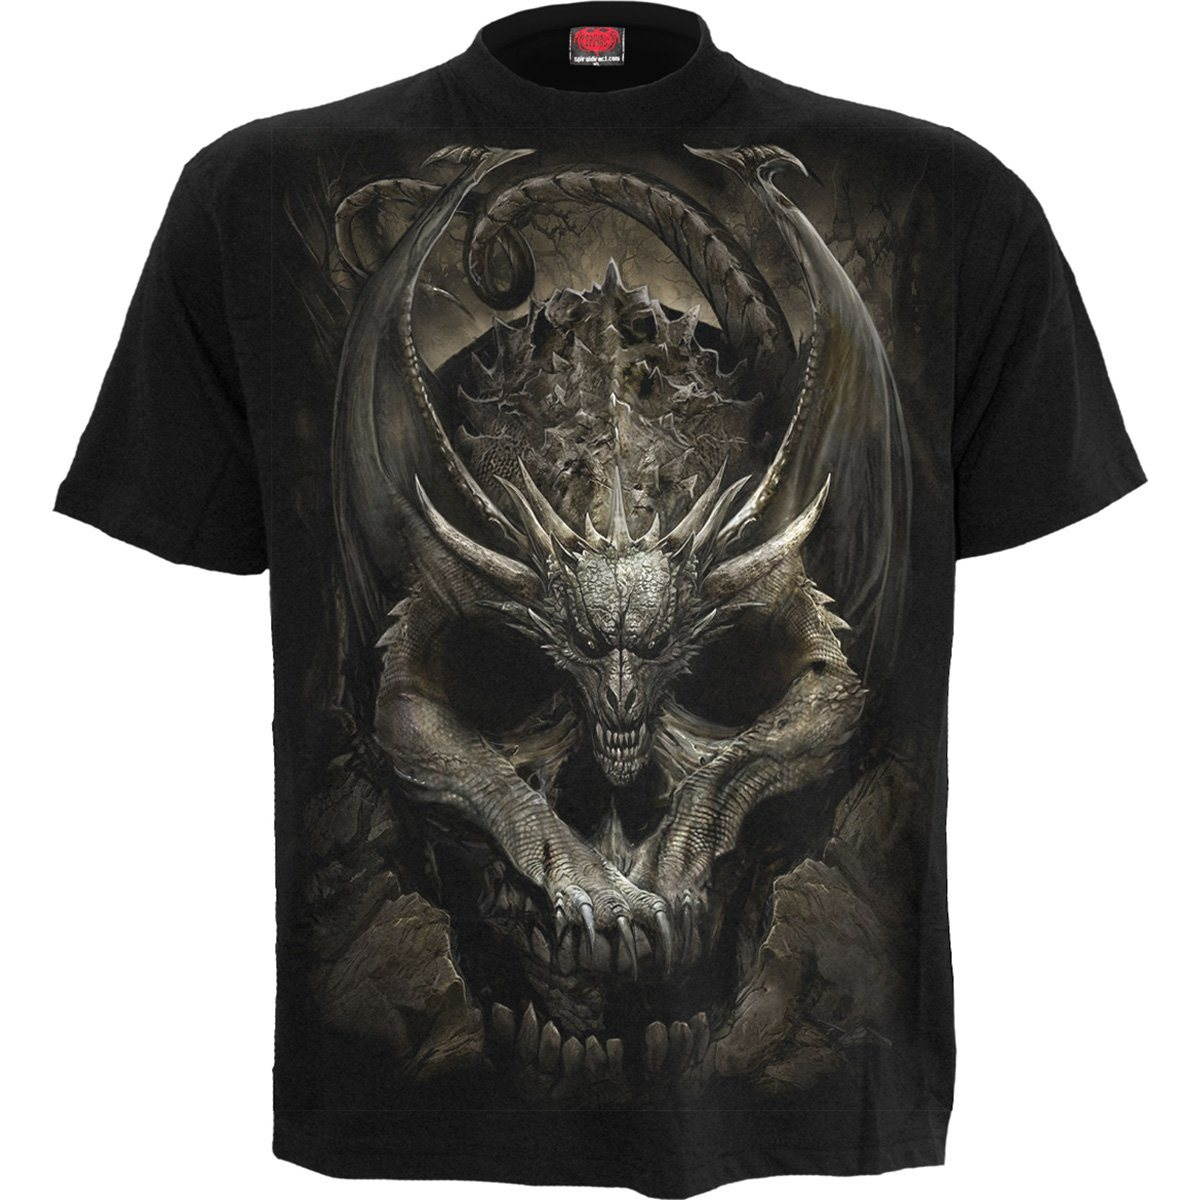 DRACO SKULL Vengeful Dragon Black T-Shirt